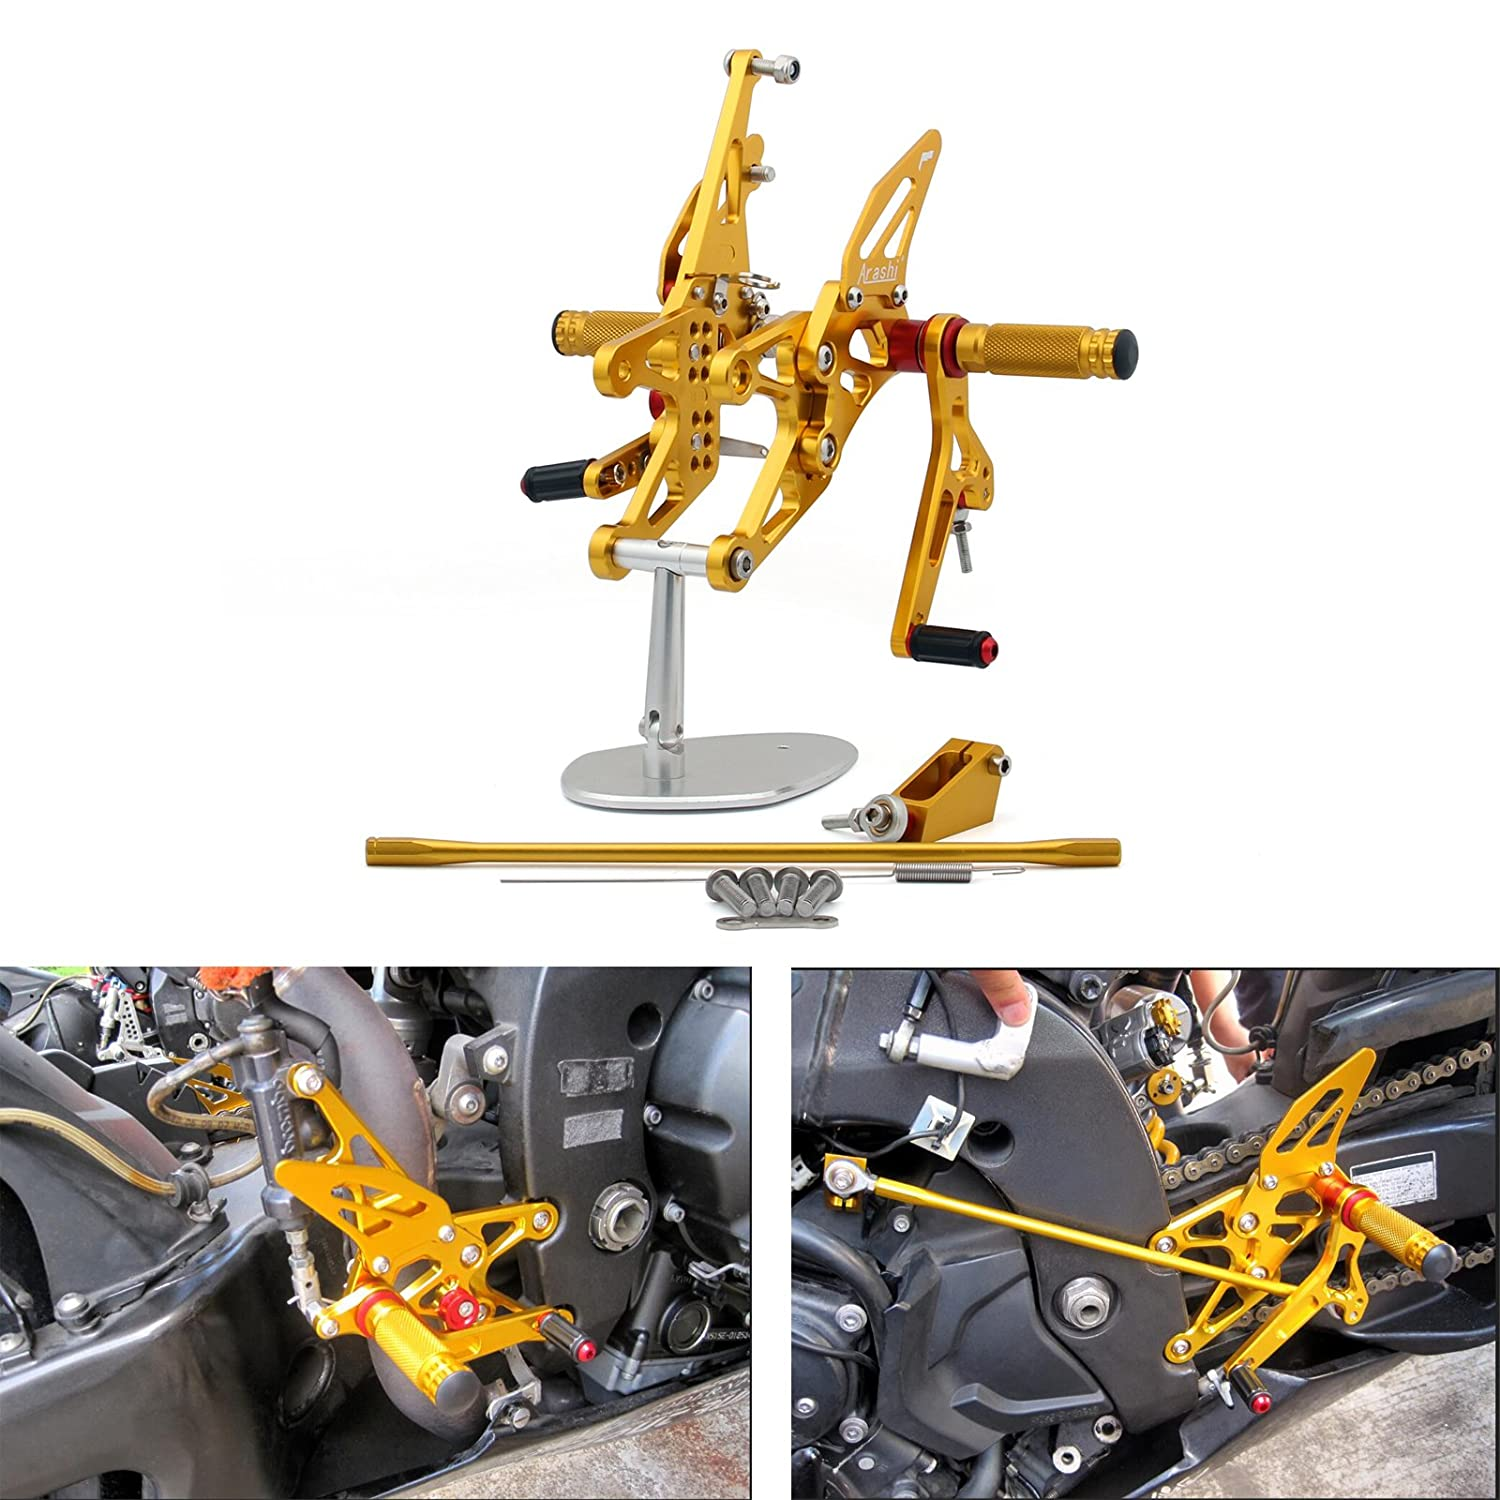 Areyourshop Rearset Rear set For Yamaha YZF 1000 R1 2007-2008 Gold M528-B012-Gold